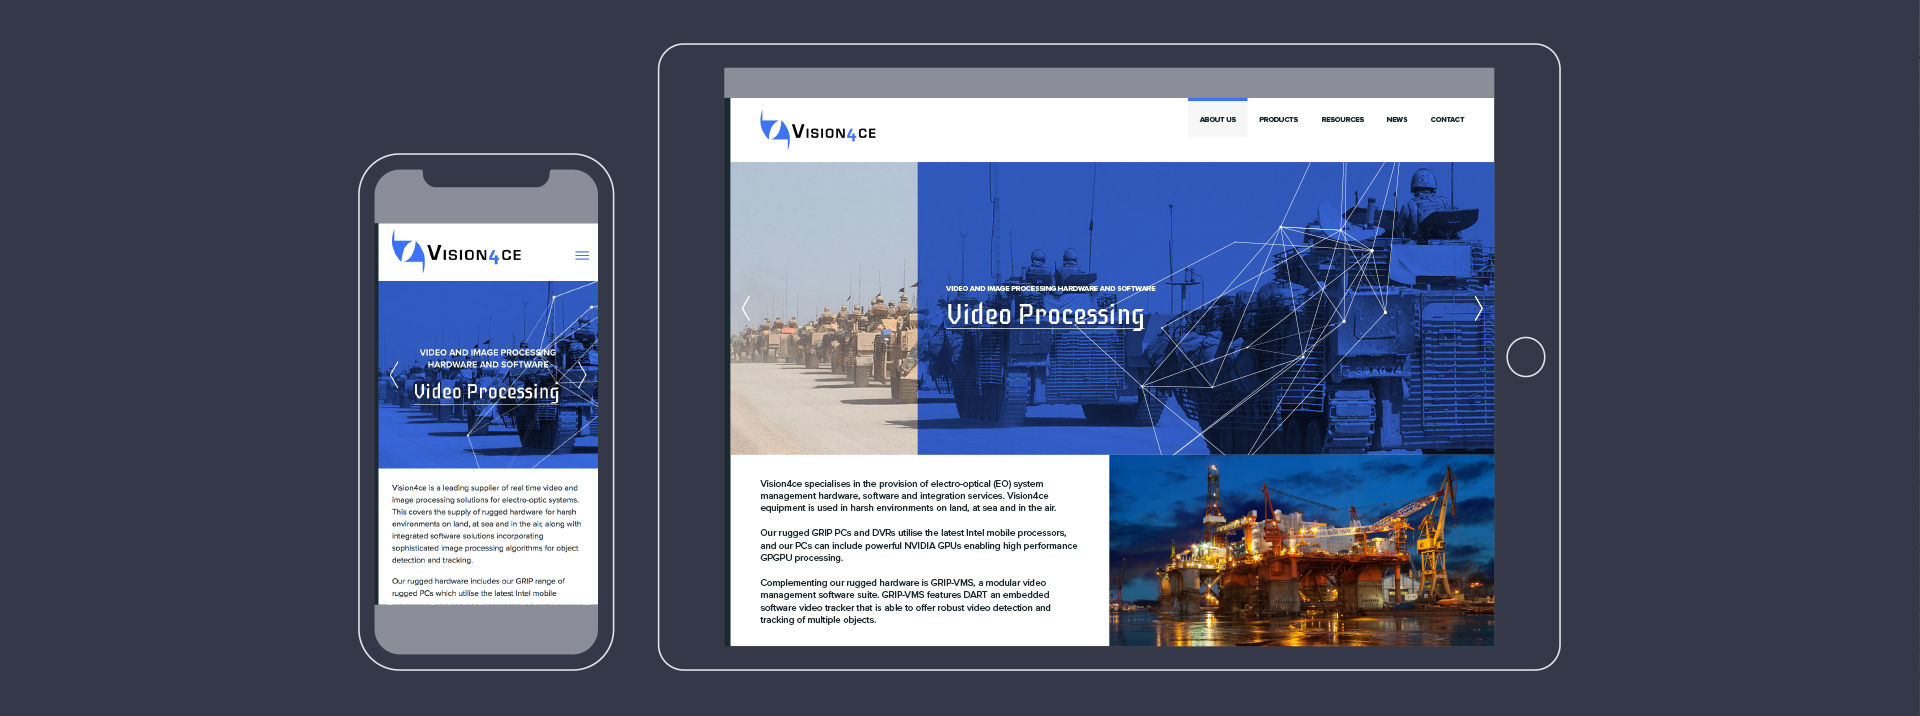 Vision4ce Website Design